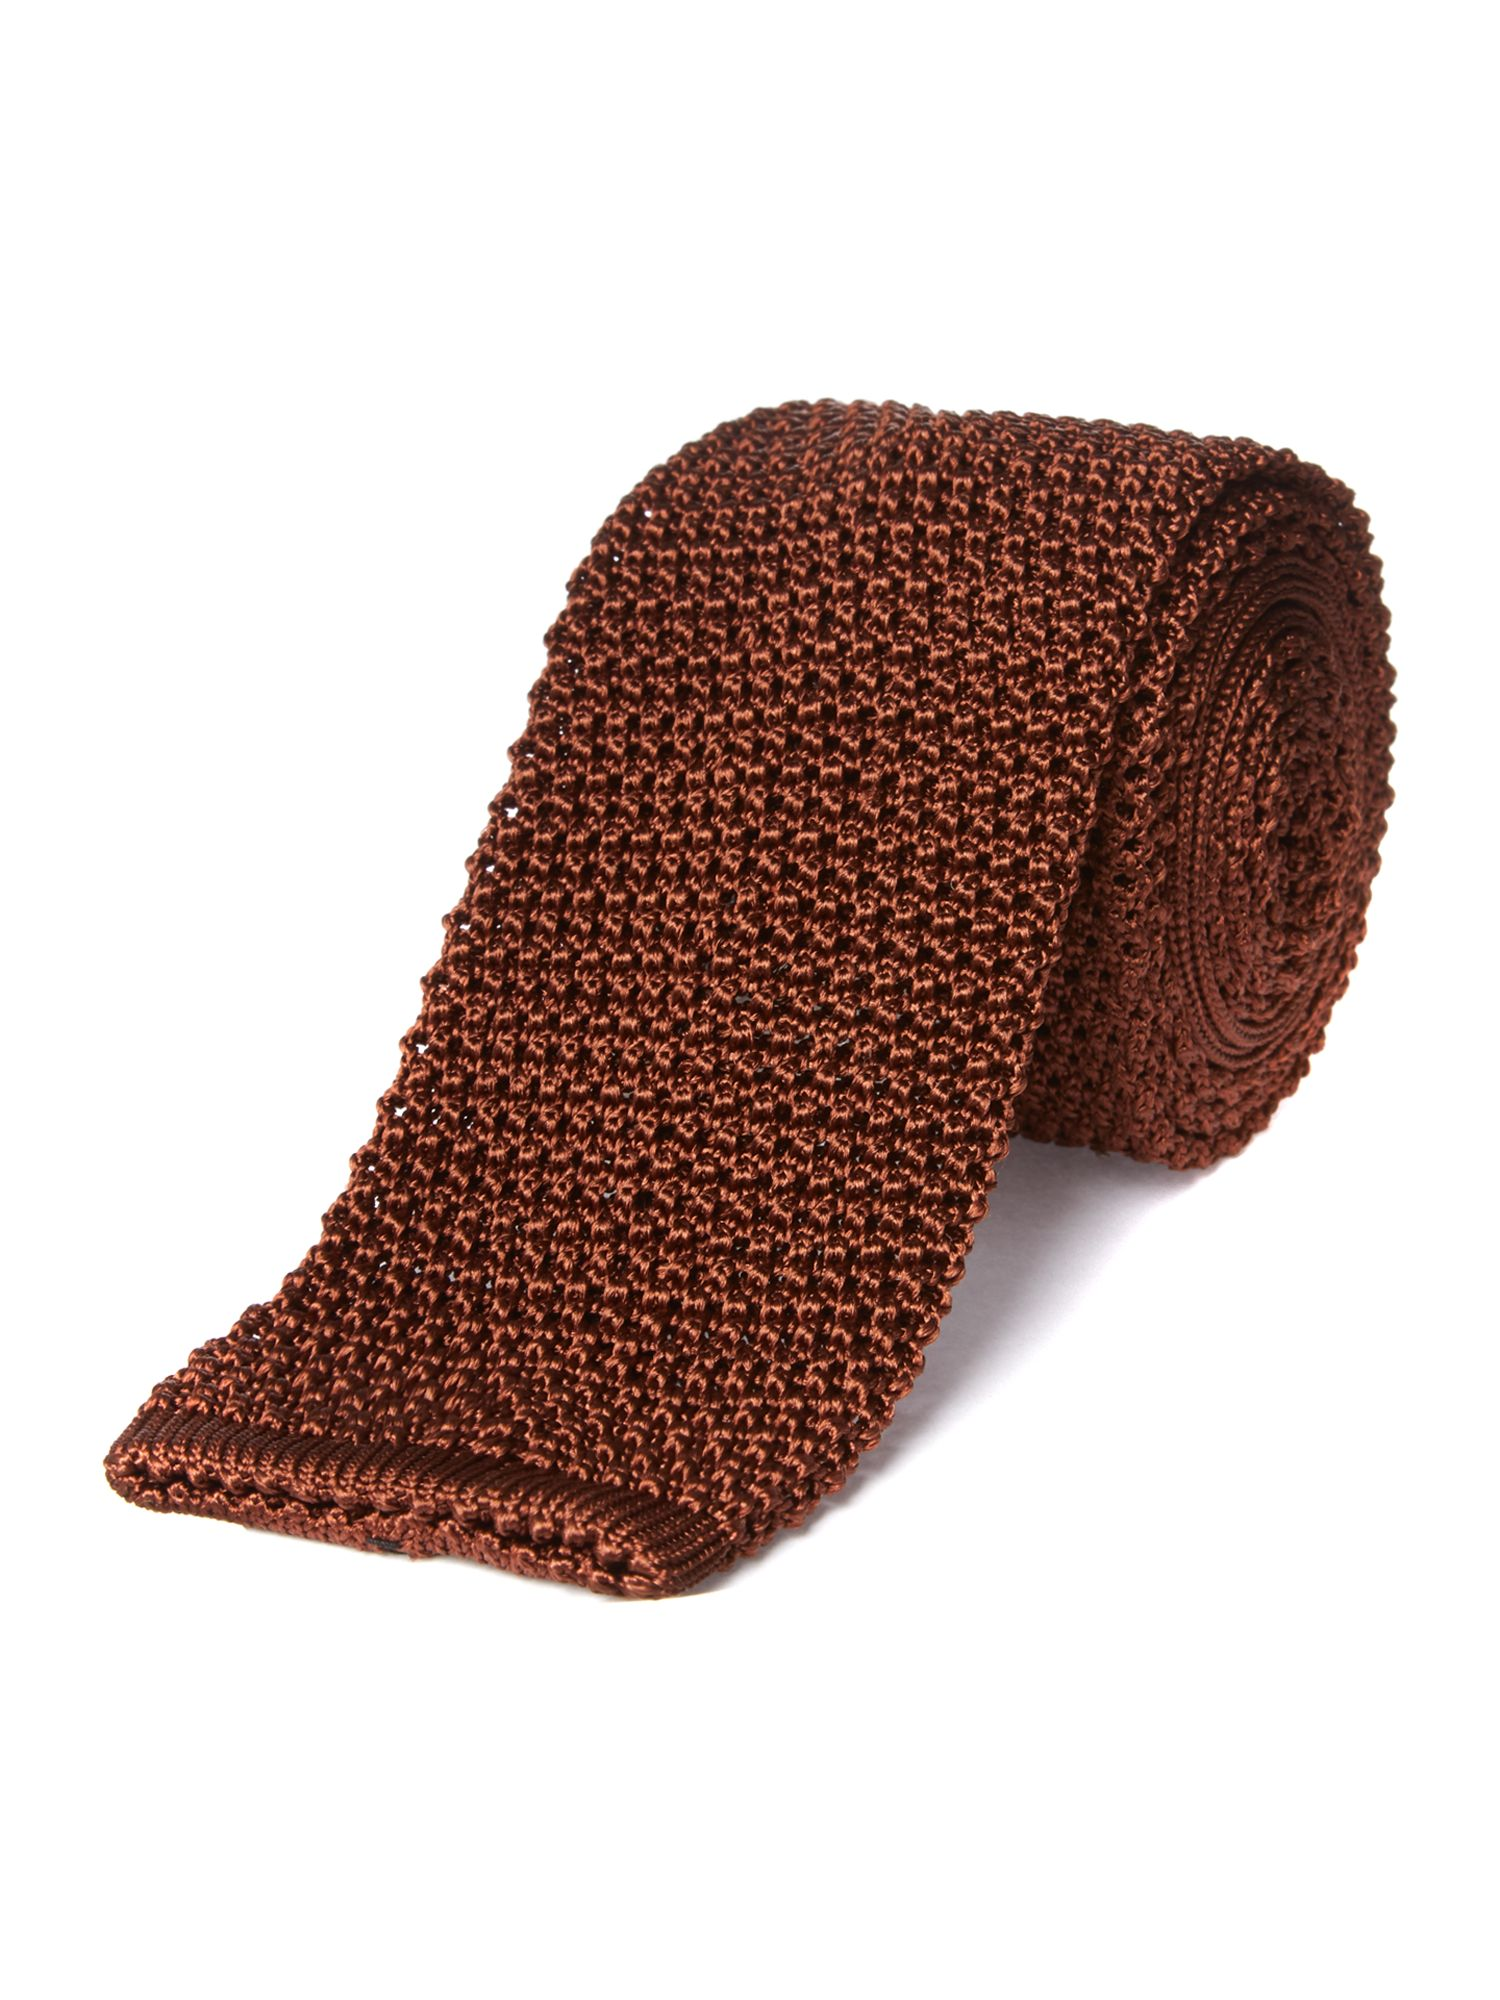 Luxury plain knitted tie